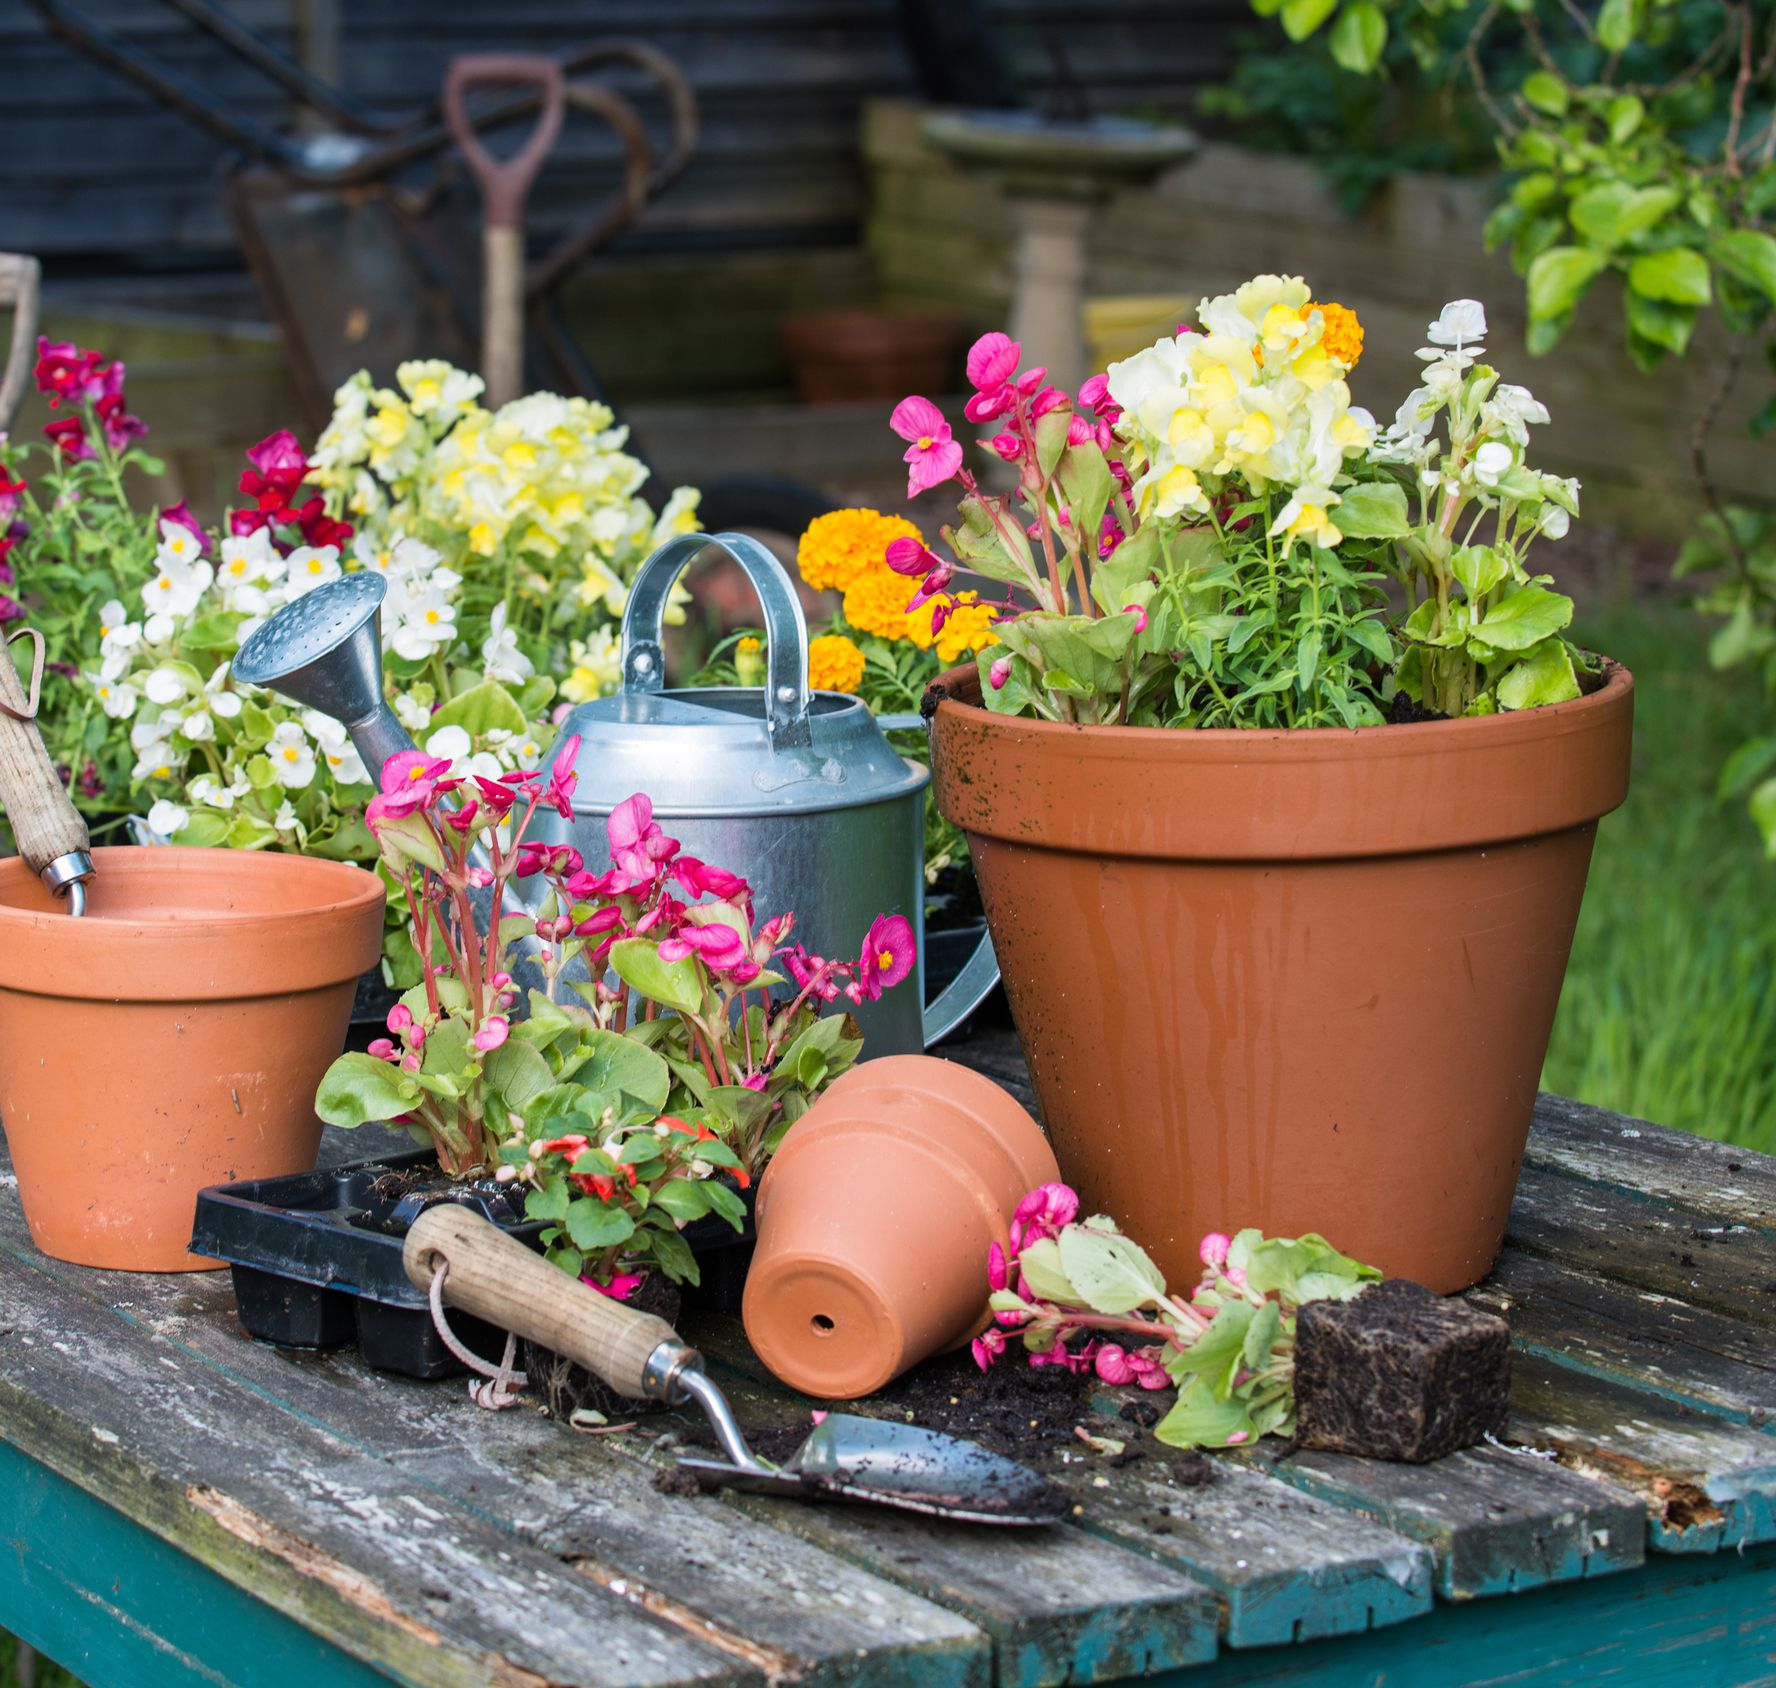 Don t Drown Those Precious Plants in Your Container Garden